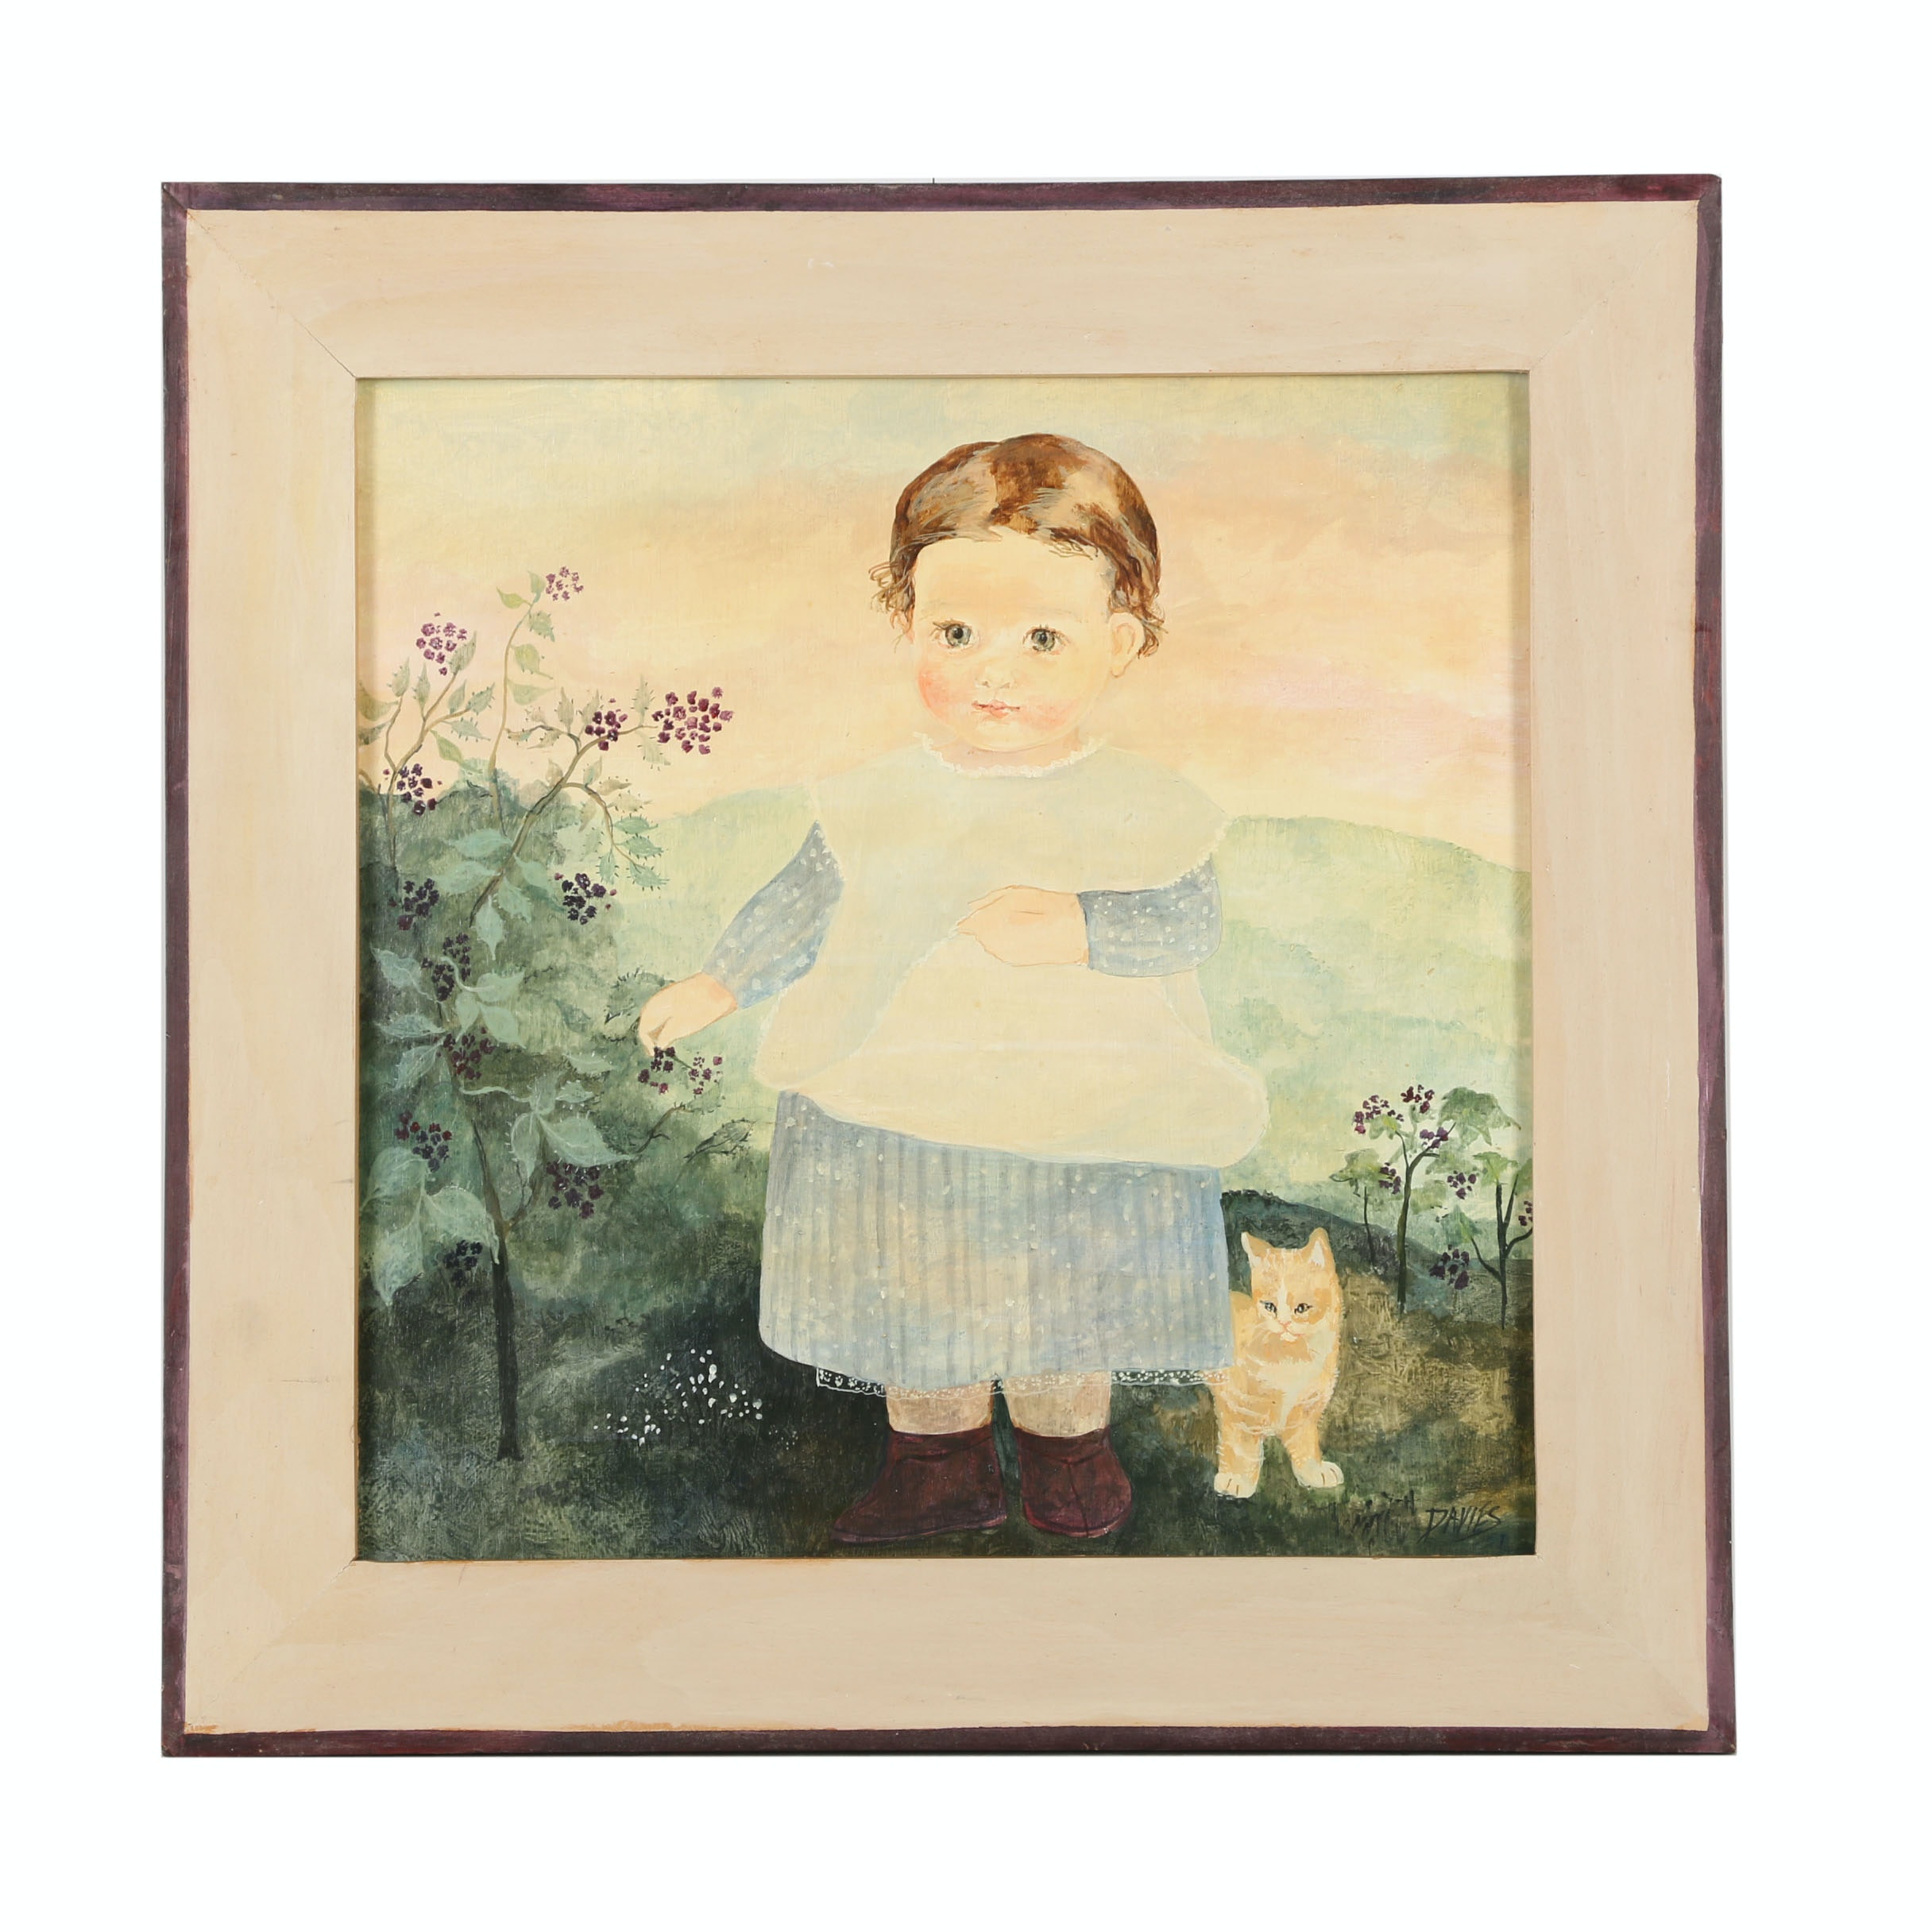 Davies Acrylic Painting on Board of a Baby and Kitten